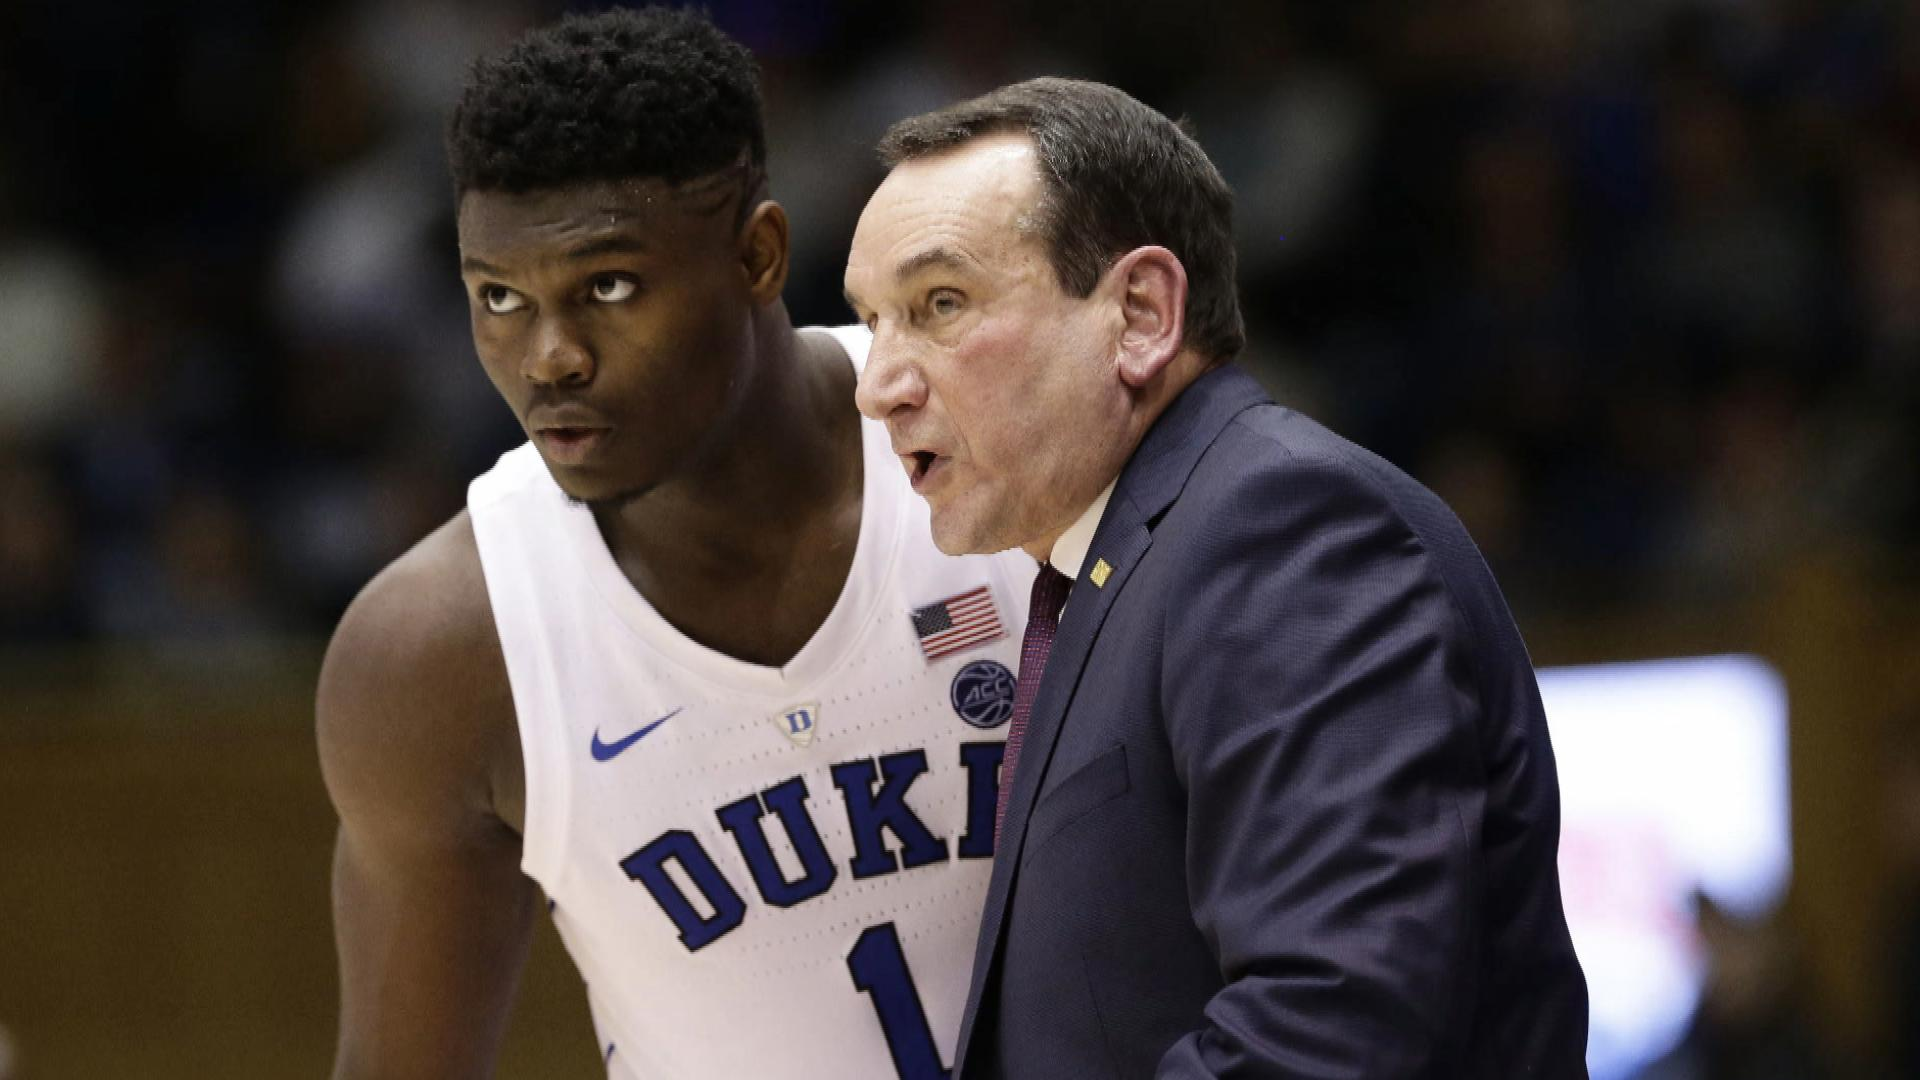 Williamson and Coach K